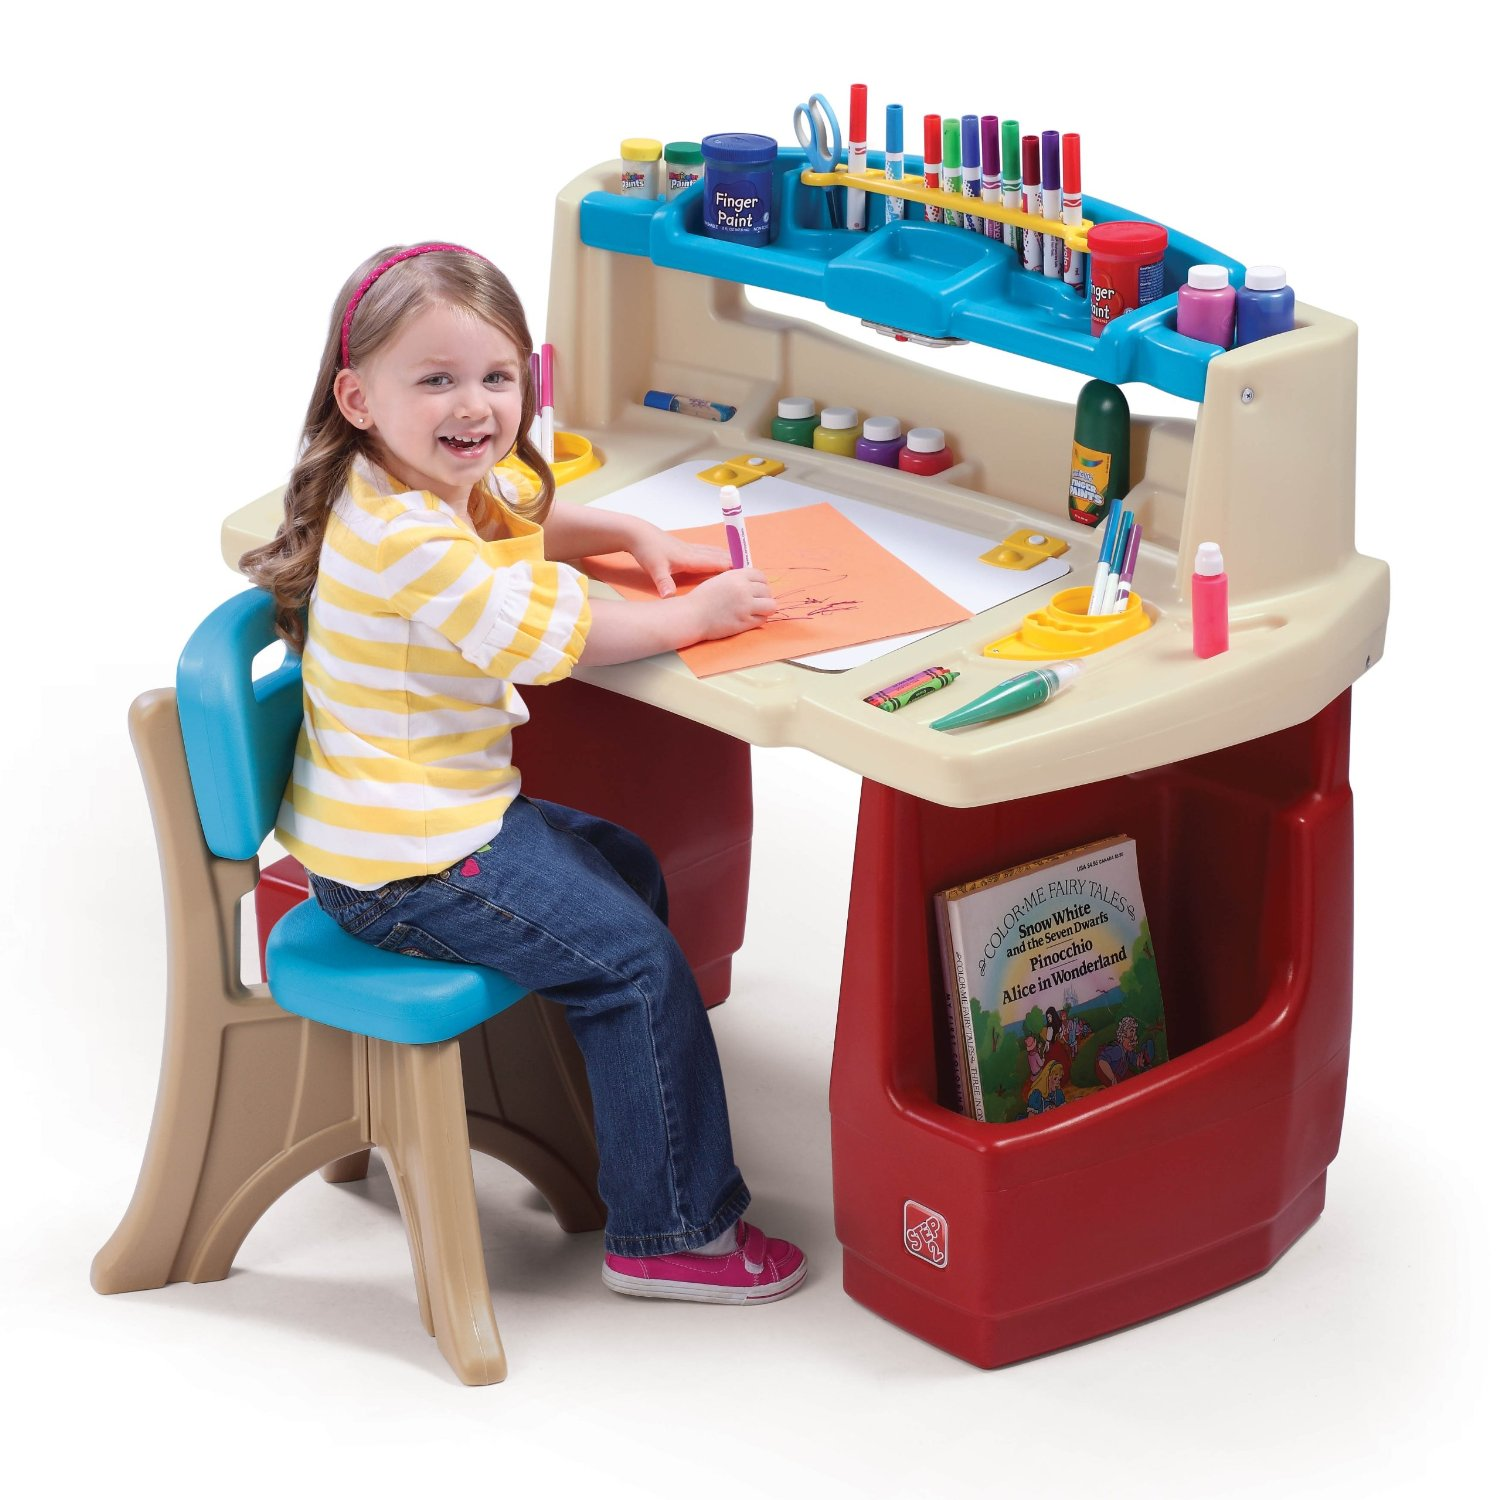 Toddler Art Desk and Chair Set Get Your Lil Picasso Started Early